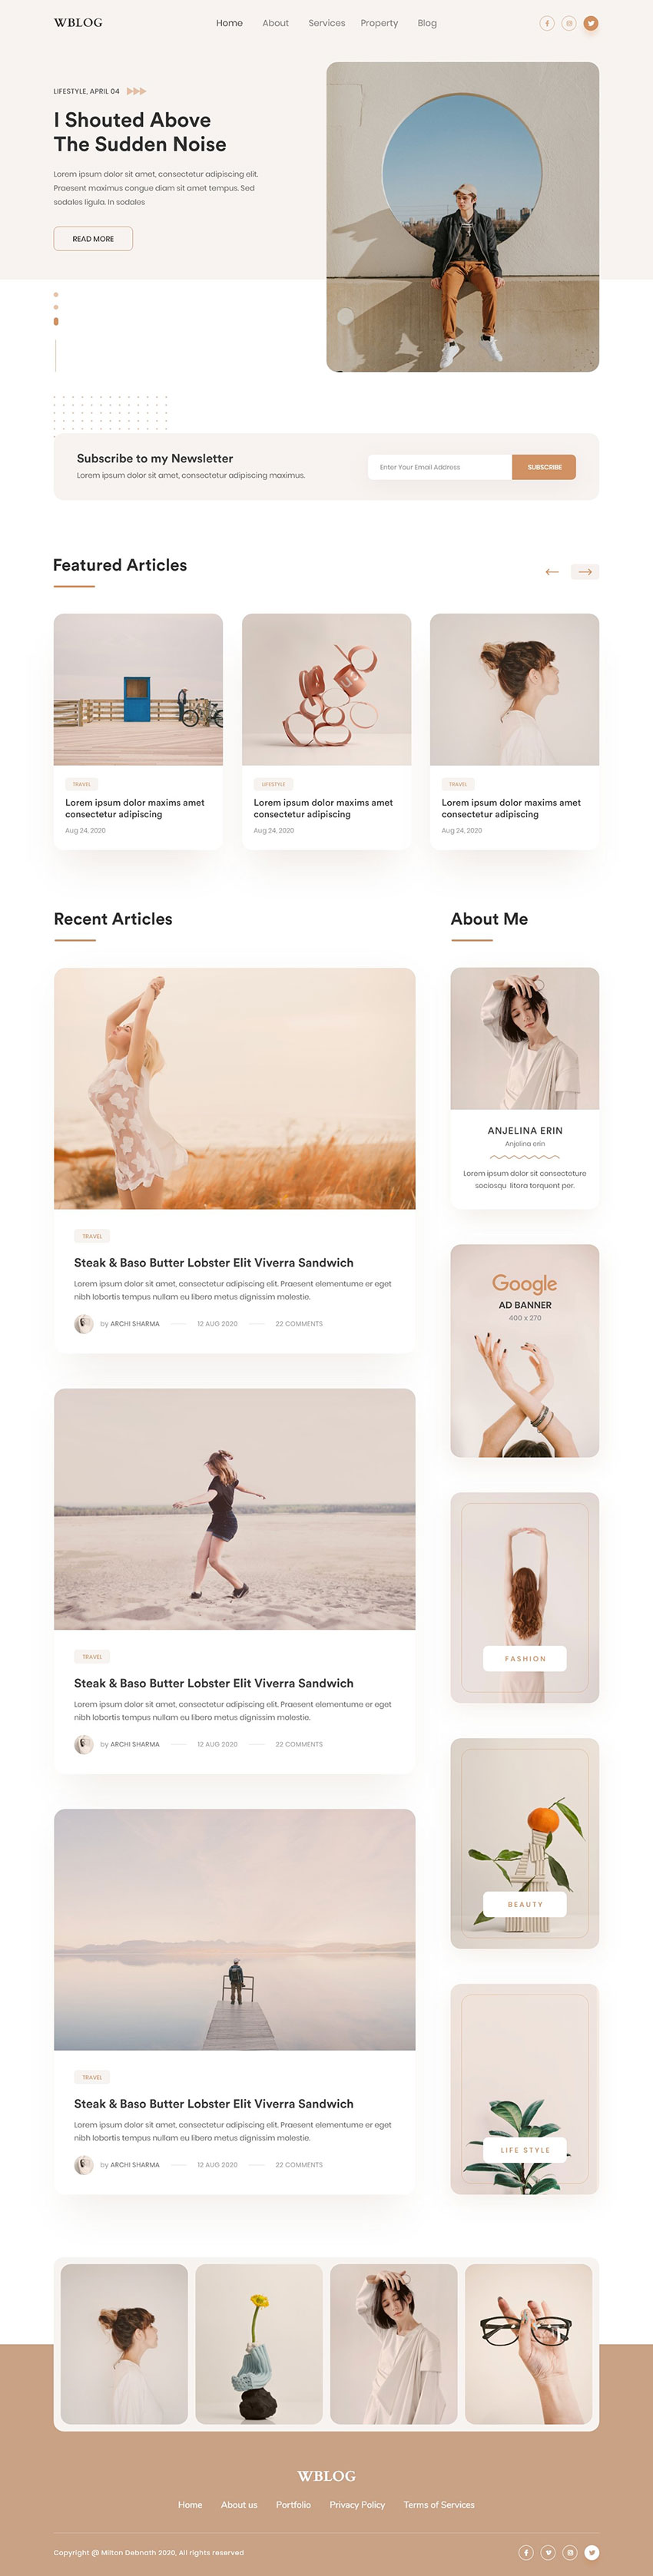 Feminine Blog is a clean and minimalist UX design that offers a crisp and fresh look. Its default layout and fonts create an elegant aesthetic perfect for any feminine blog.